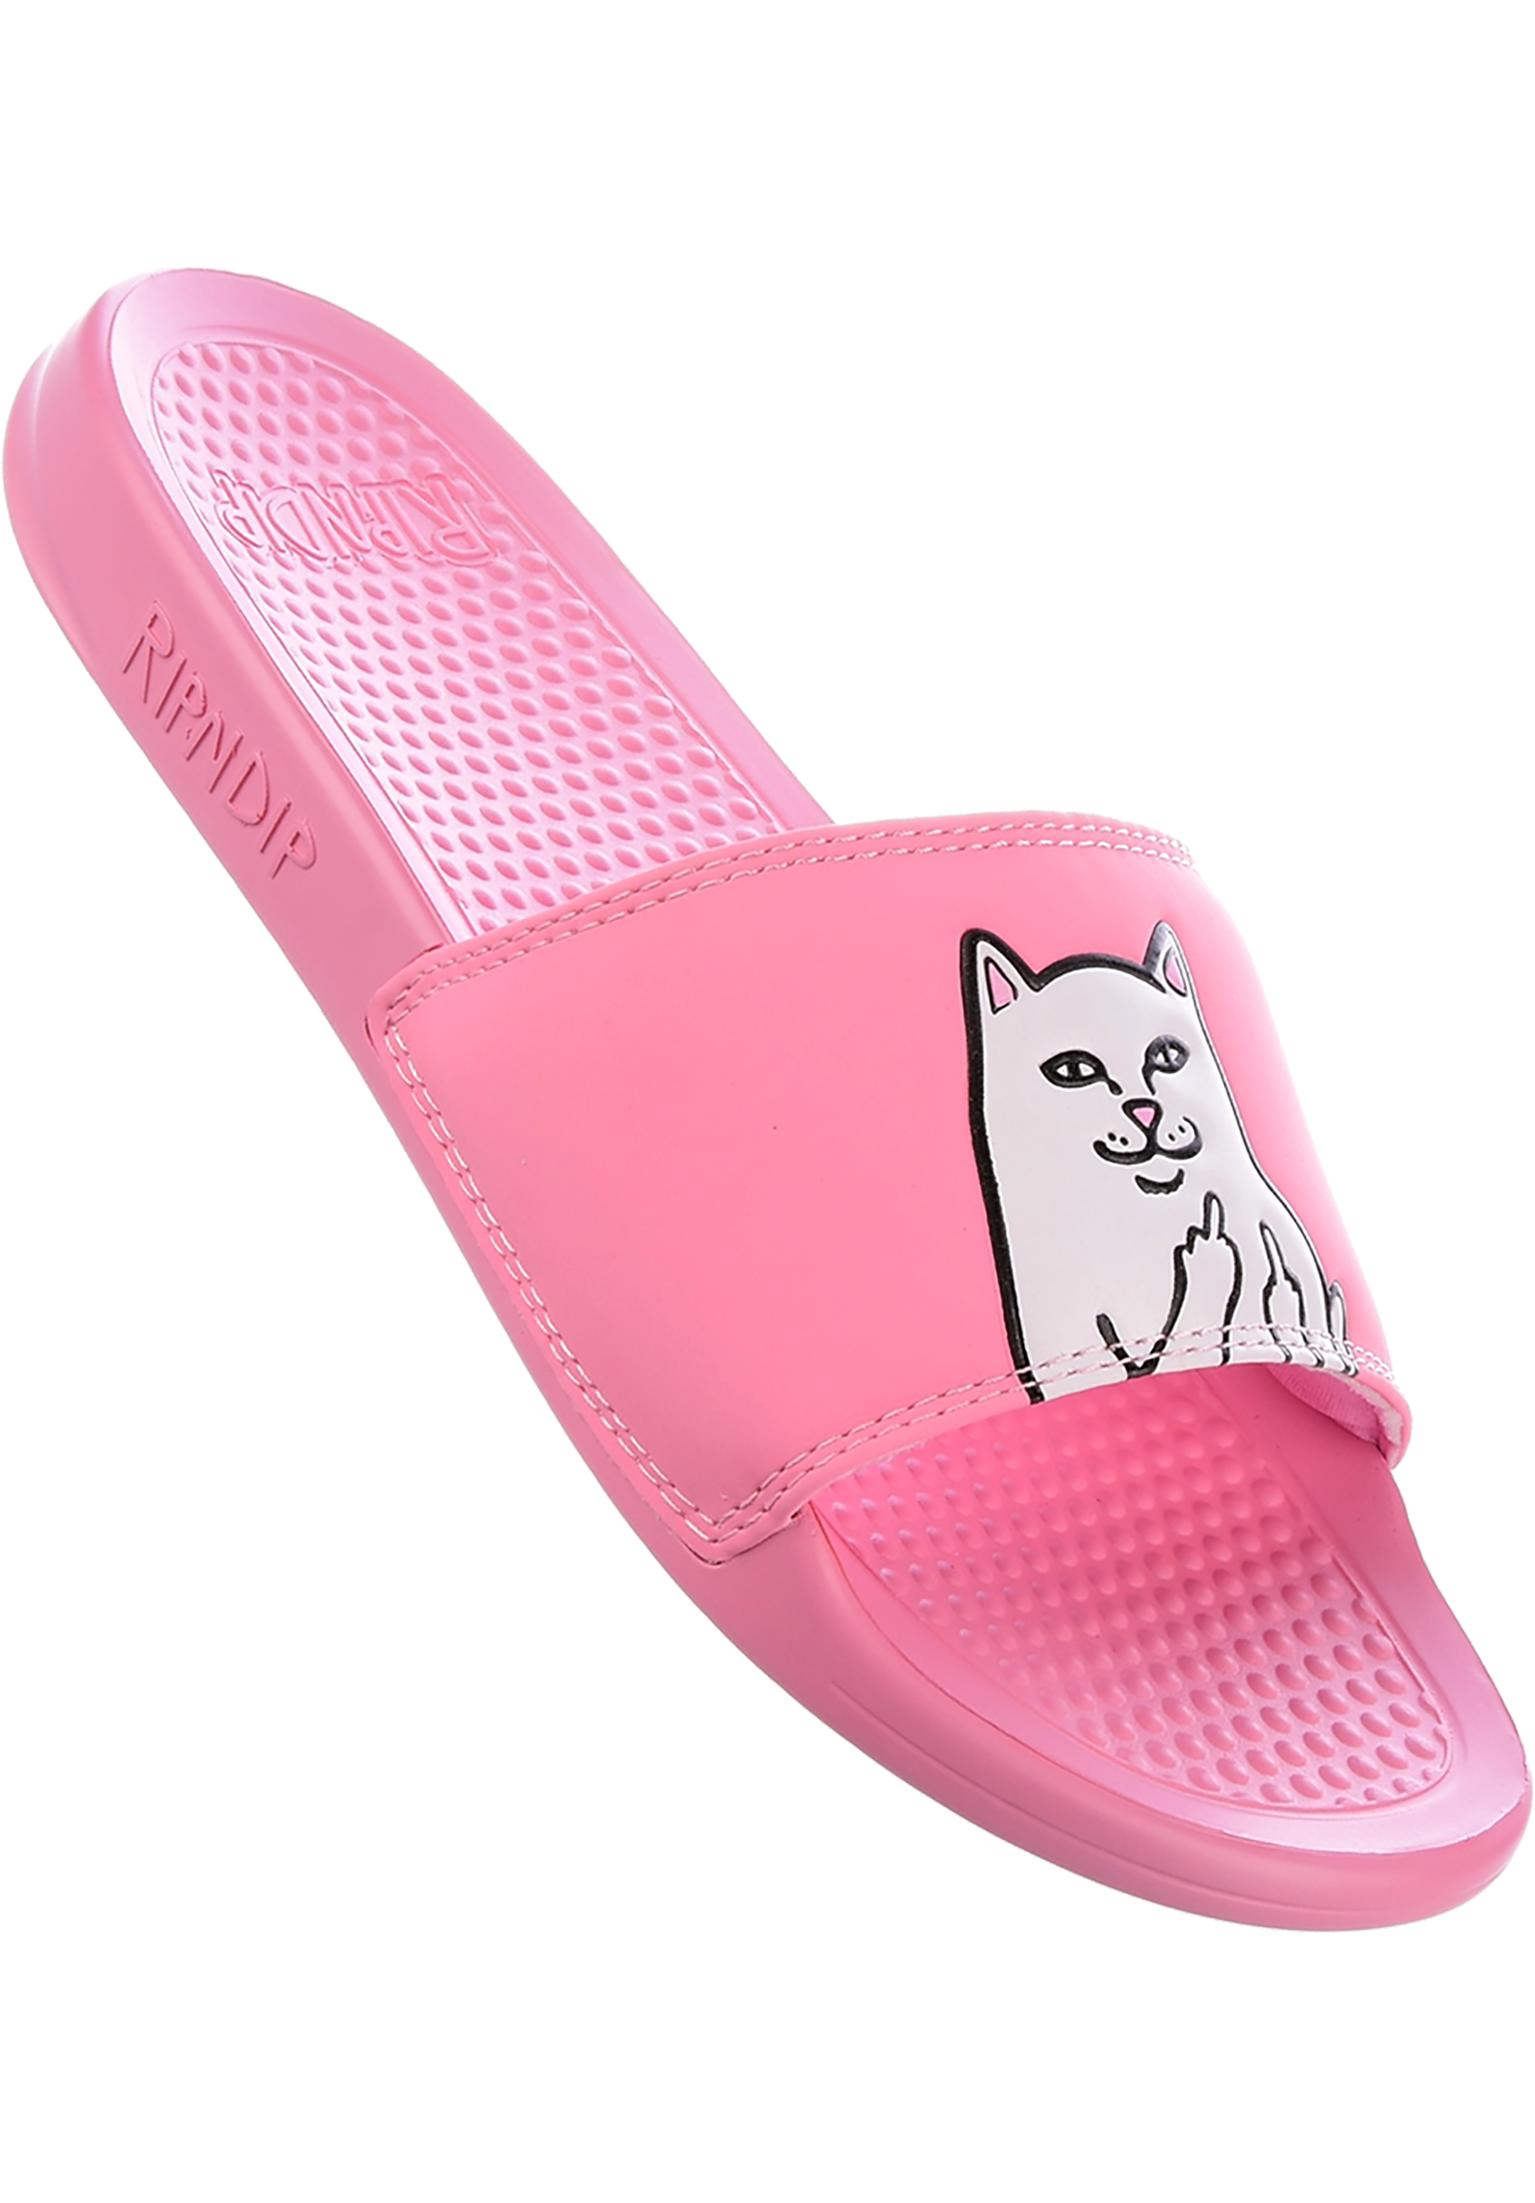 a0c77b05995c Lord Nermal Slides Rip N Dip Sandals in pink for Men